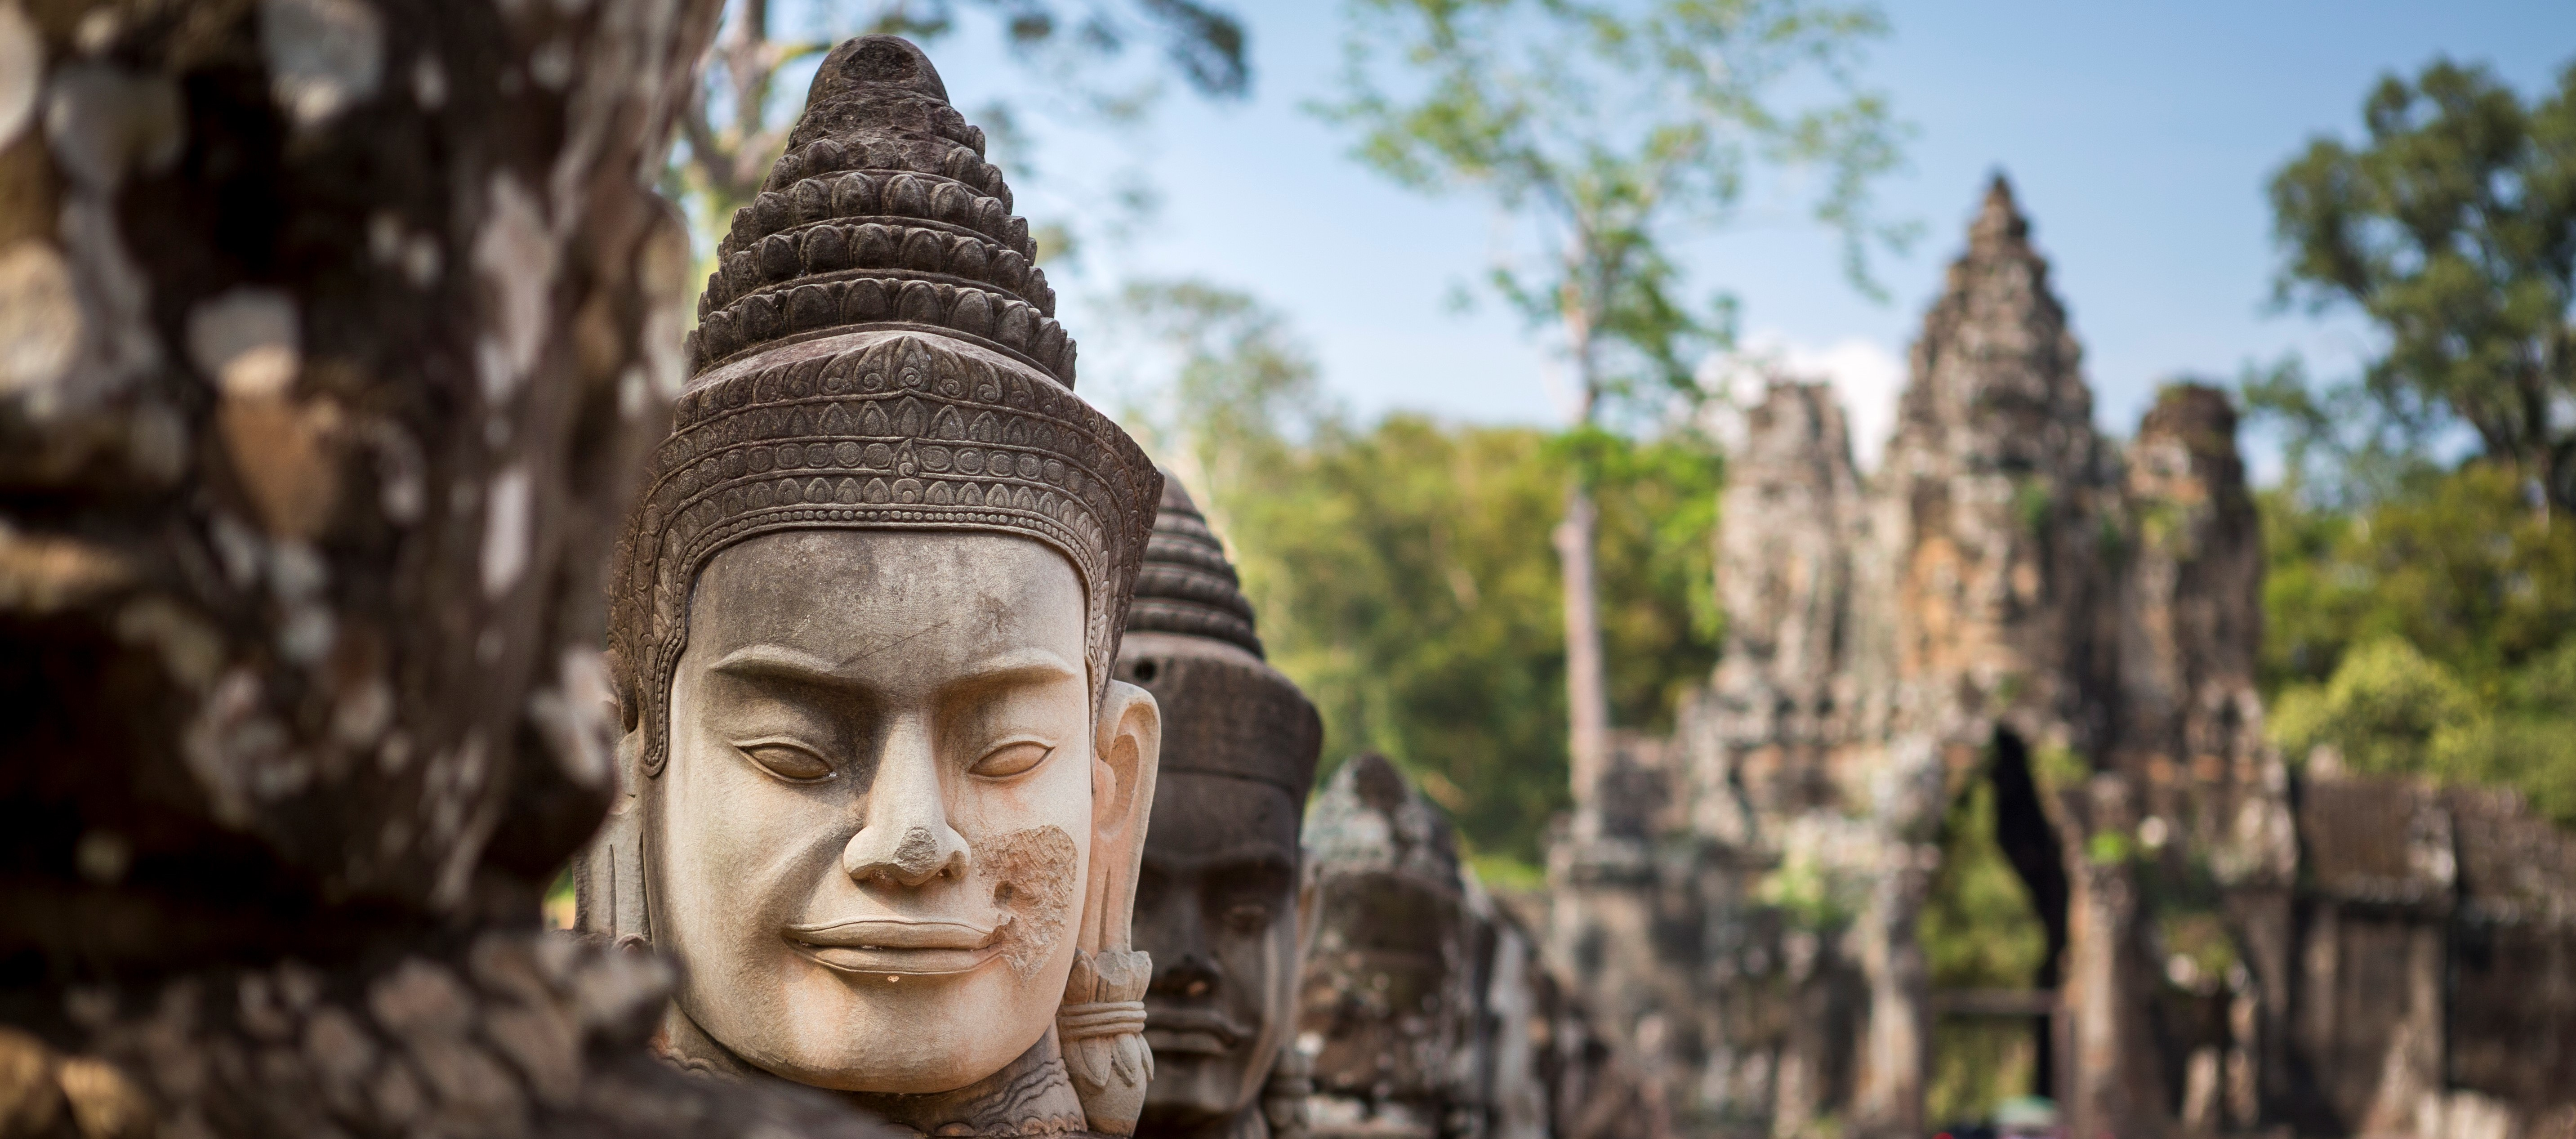 Glamping Asia: A Luxury Camping Experience Thailand, Laos & Cambodia